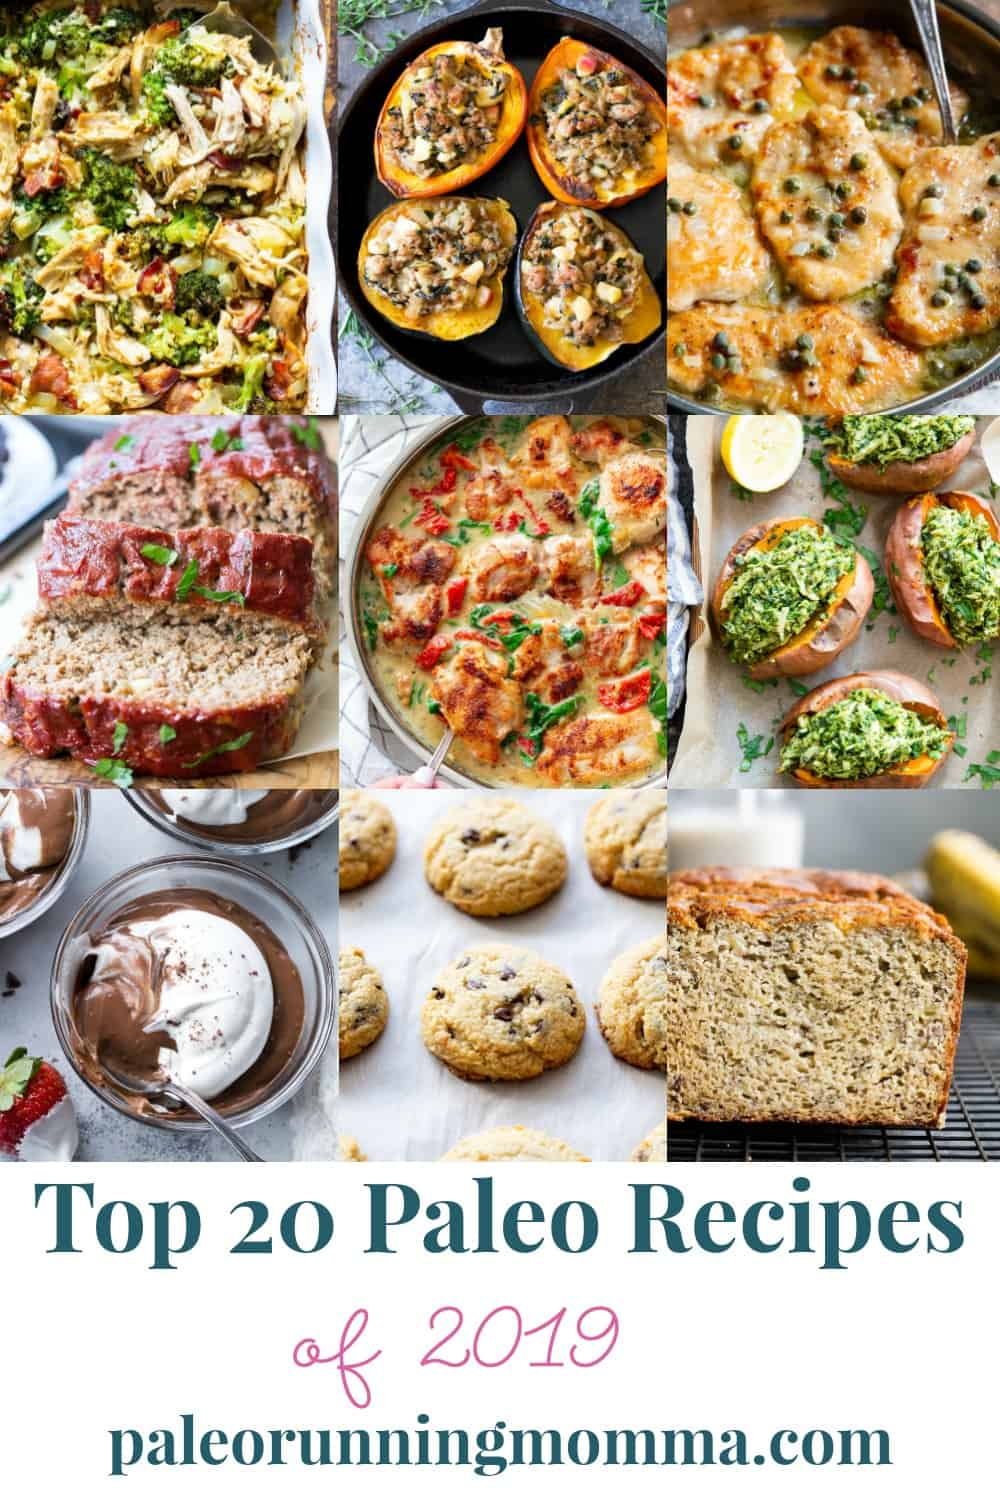 The top 20 paleo recipes from Paleo Running Momma of 2019. Everything from paleo and Whole30 breakfast recipes, make ahead lunches and easy, tasty clean eating paleo dinners that everyone will love! Plus delicious paleo baking and dessert recipes.